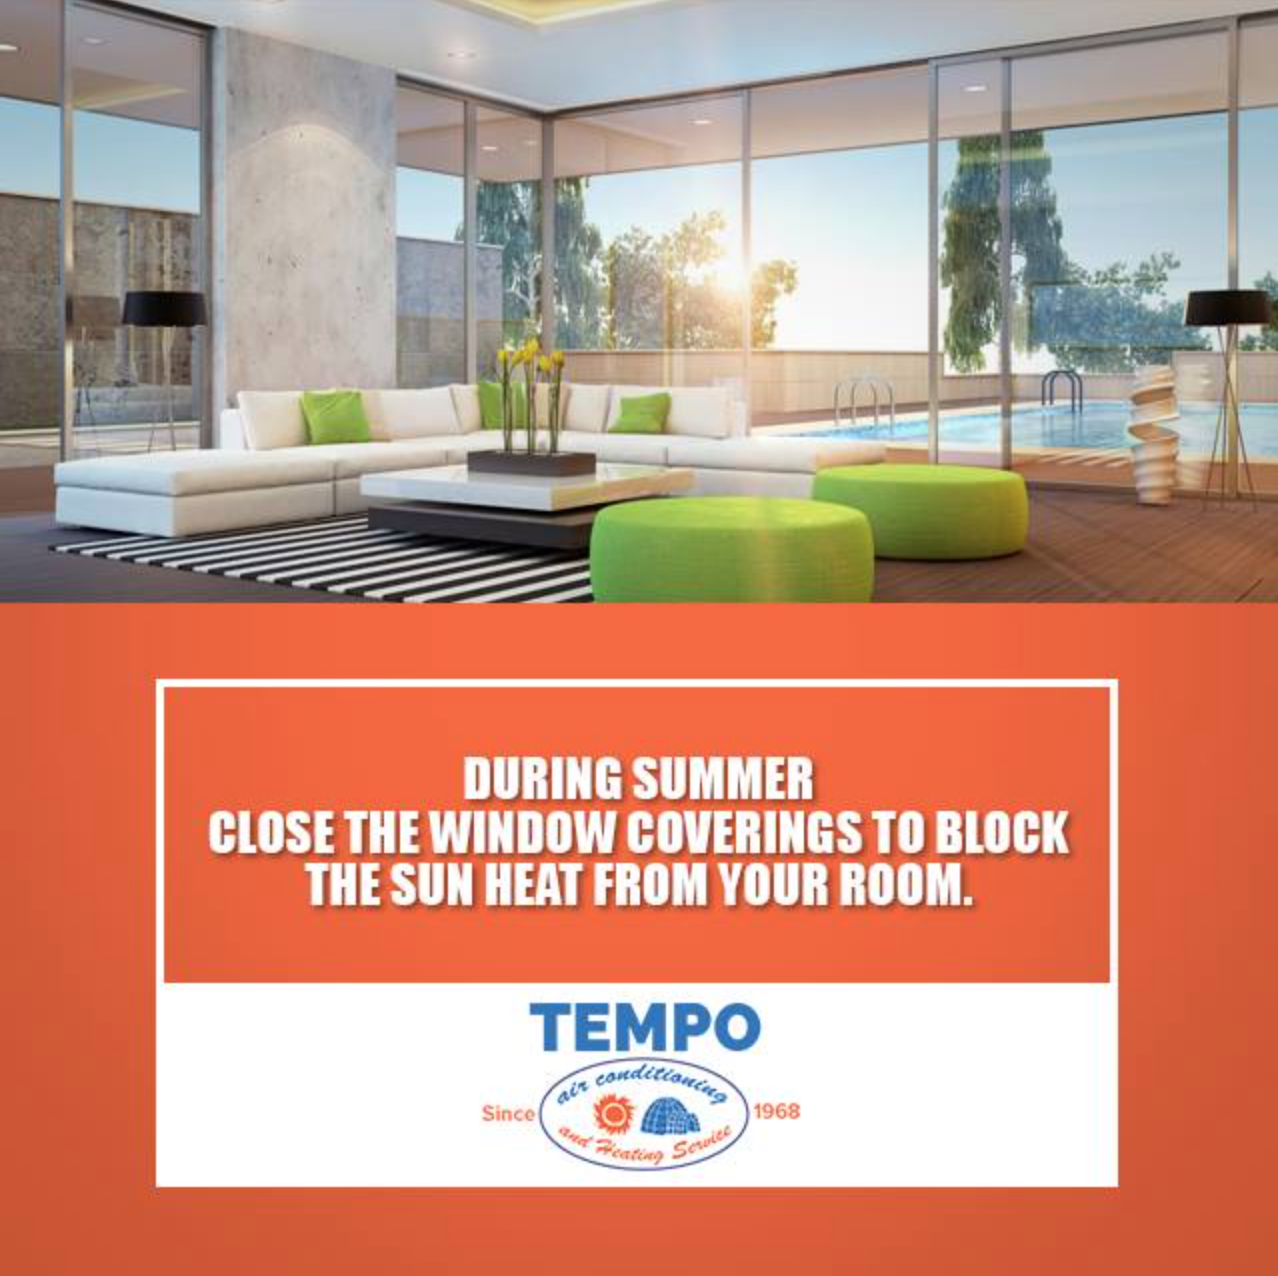 Tempo Air Conditioning image 3